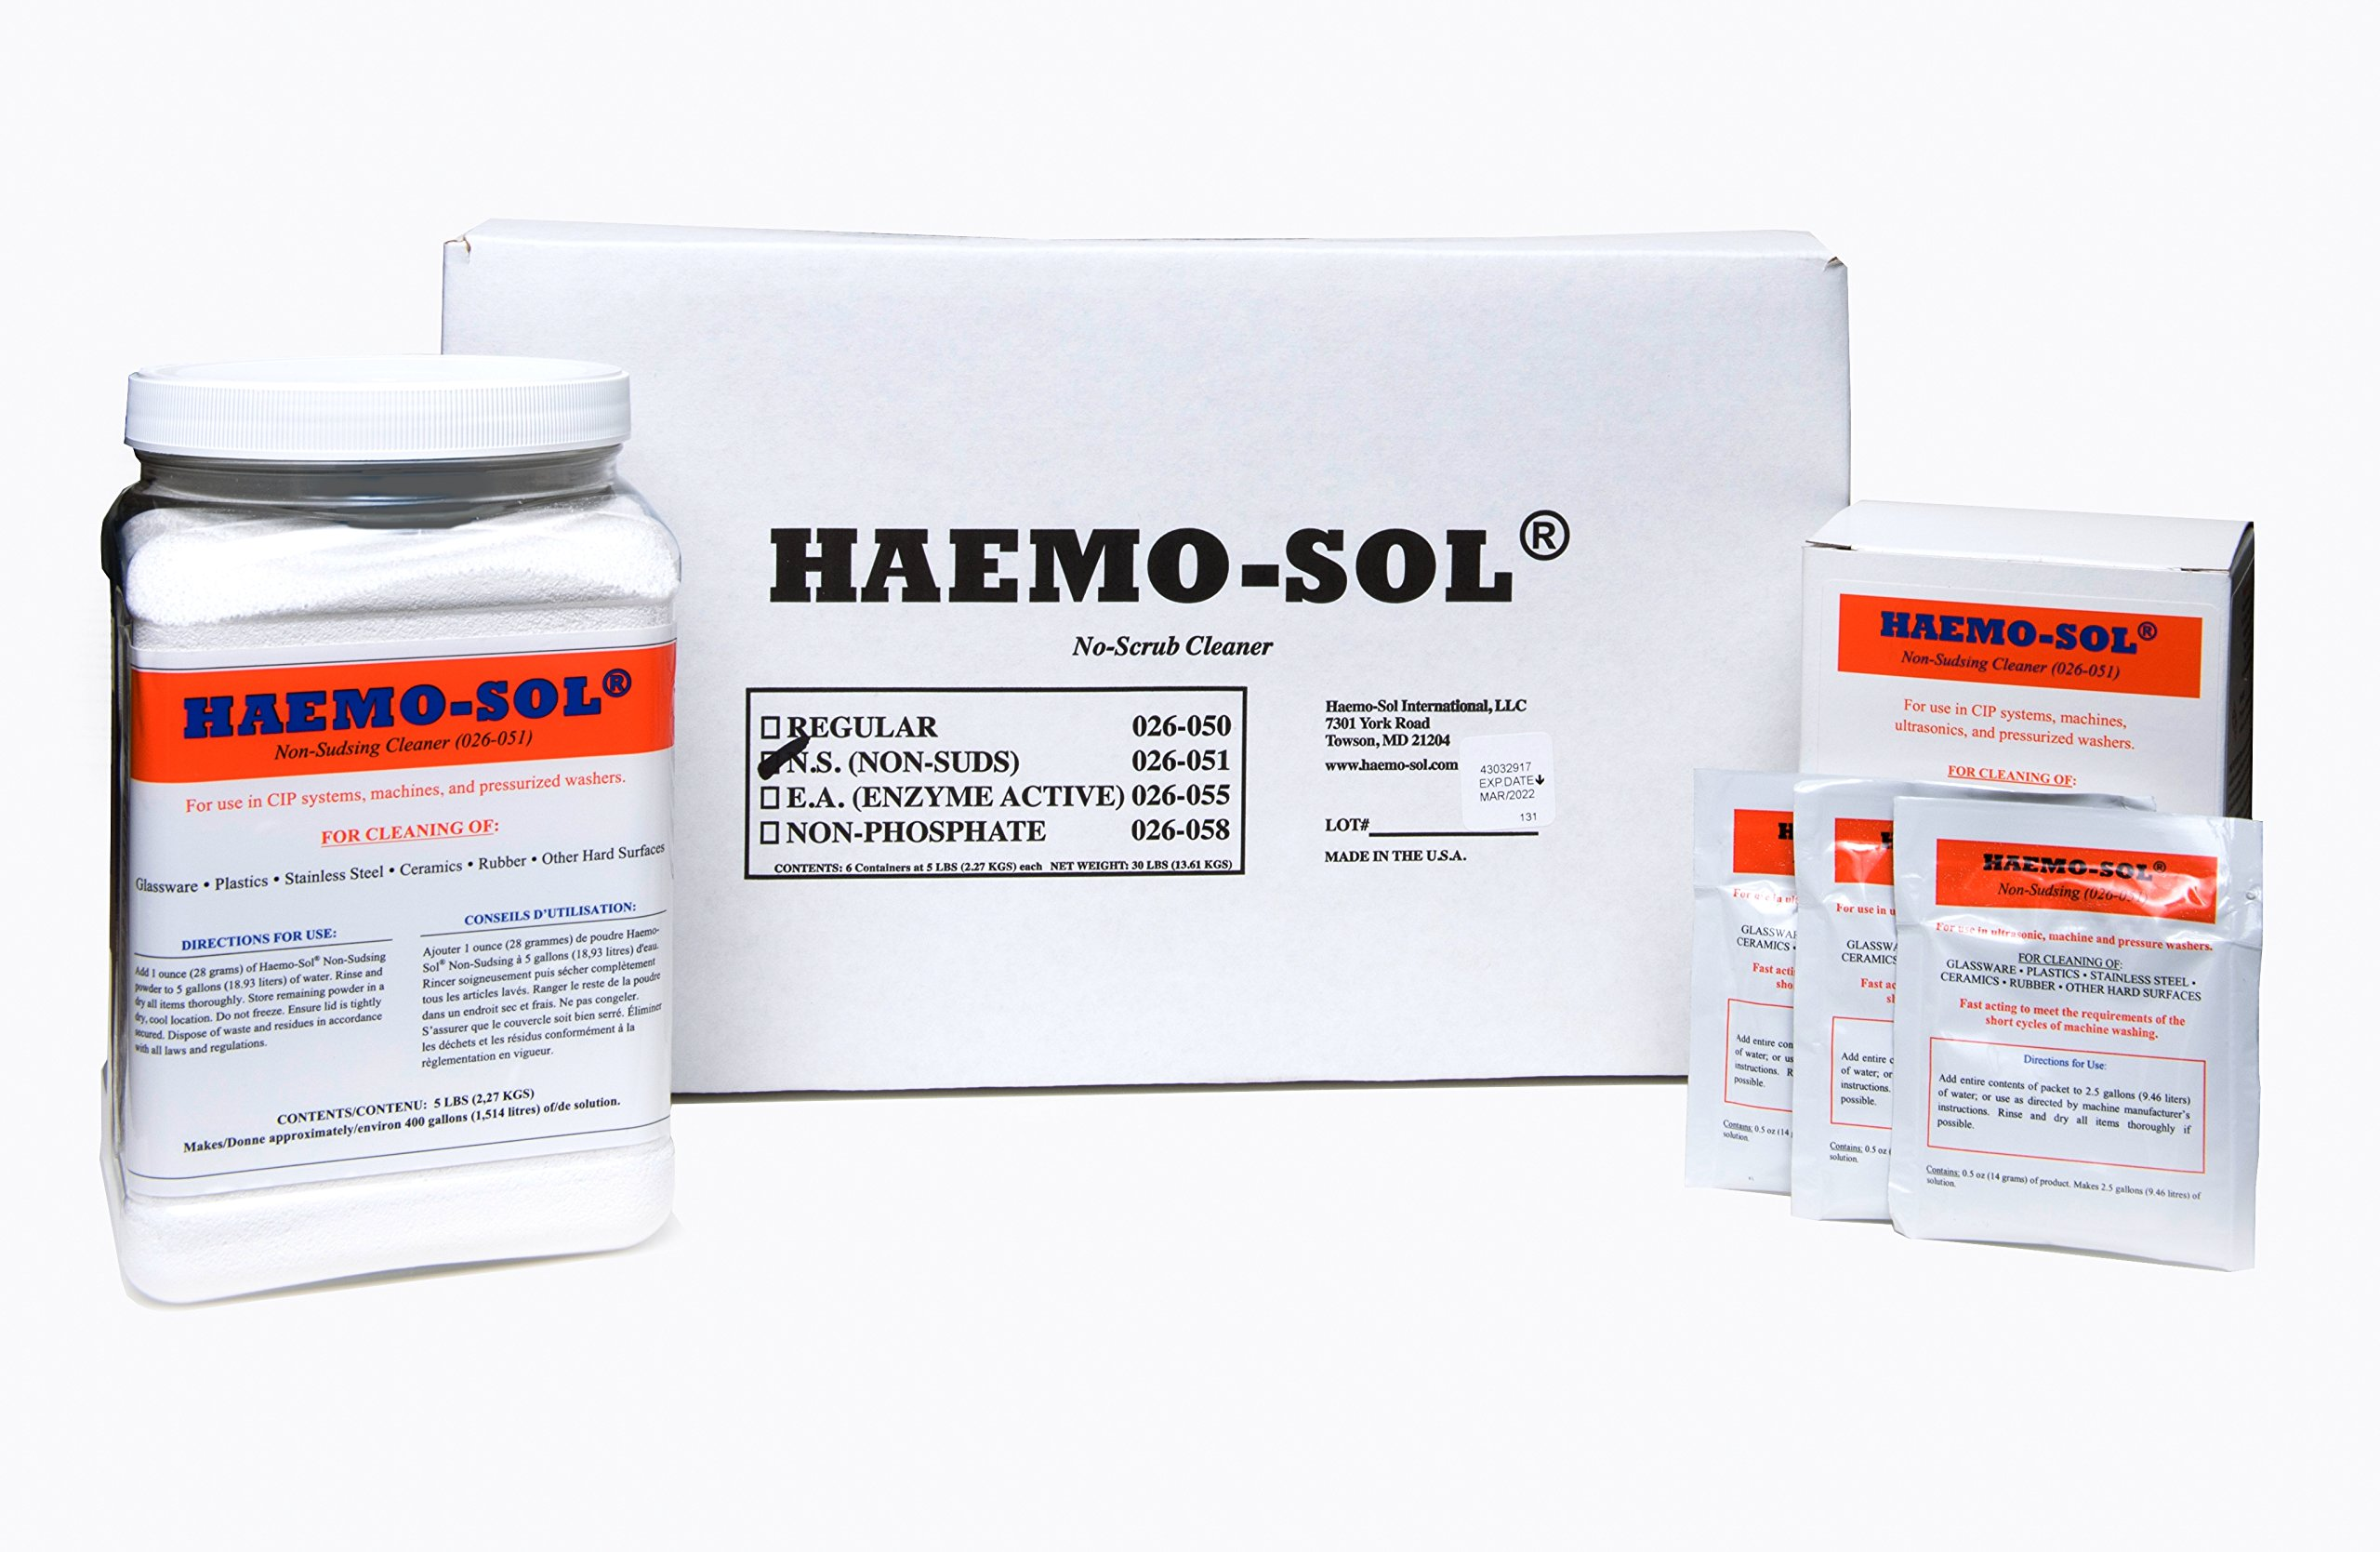 HAEMO-SOL 026-051CN Non-Sudsing Detergent for Mechanized Cleaning Systems, 5 lb by HAEMO-SOL (Image #1)